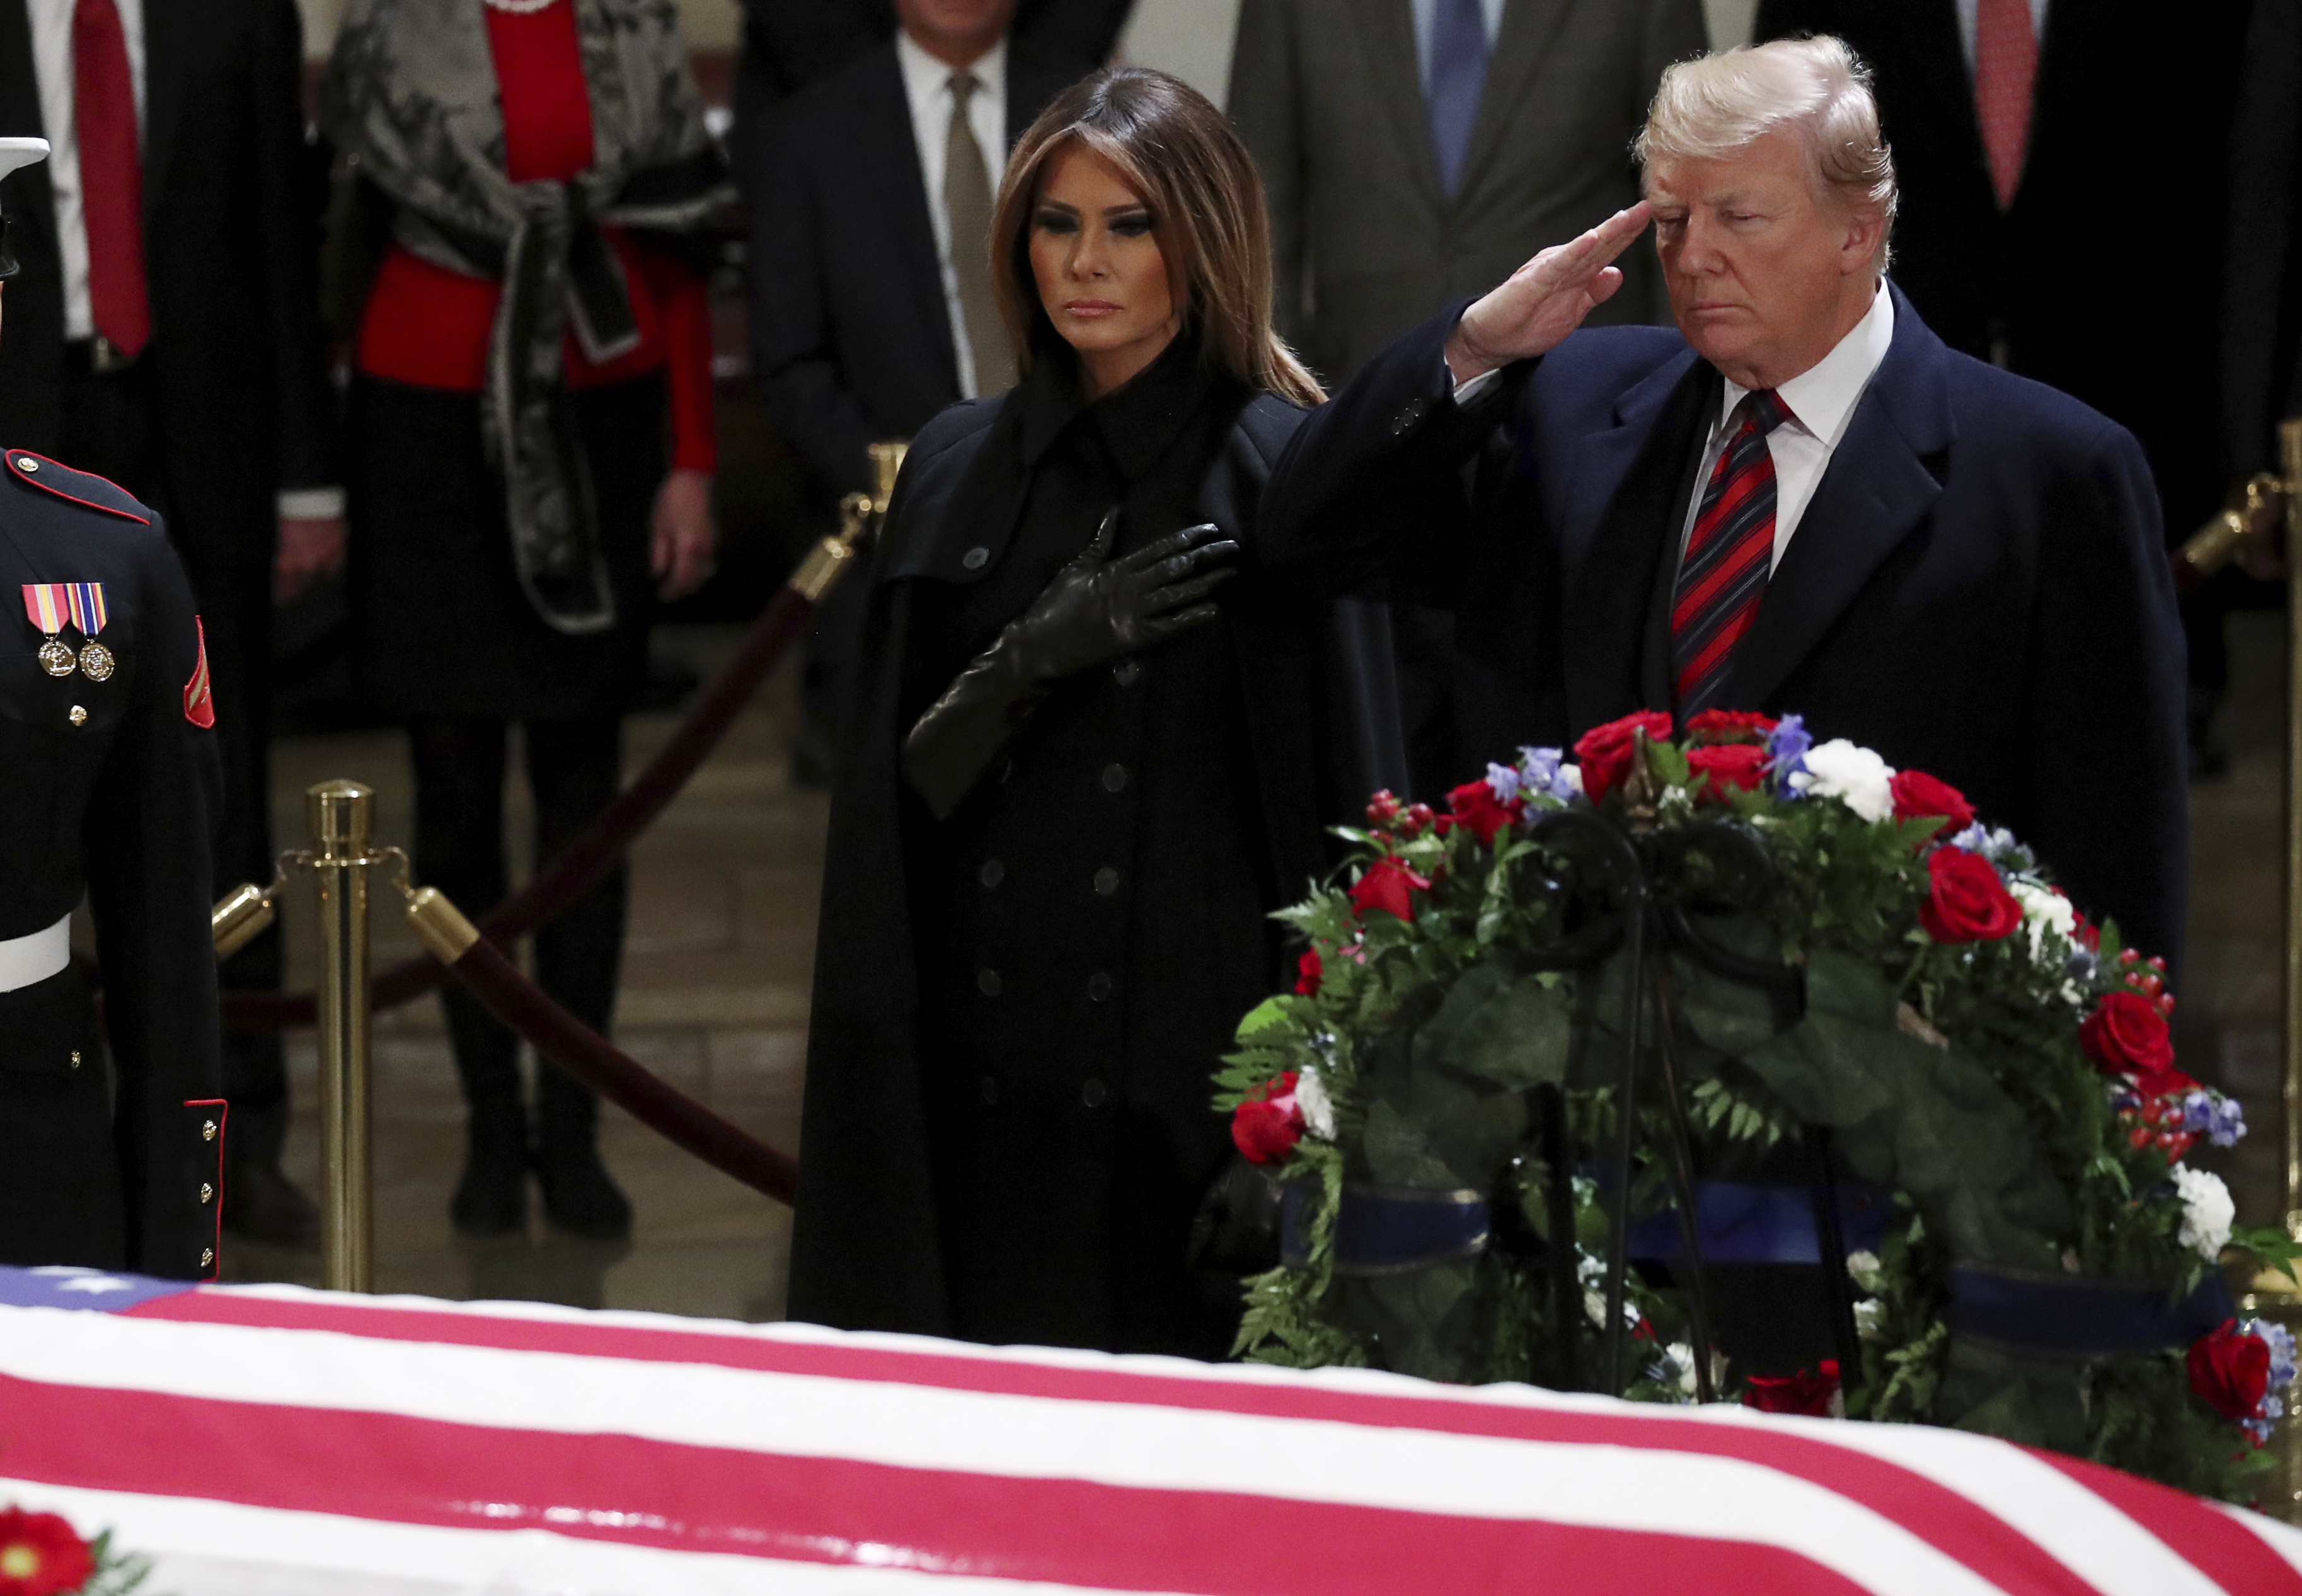 President Donald Trump salutes and first lady Melania Trump pays respects at the casket of former President George H.W. Bush as it lies in state inside the Capitol Rotunda on Capitol Hill, Monday, Dec. 3, 2018 in Washington. (Jonathan Ernst/Pool via AP)